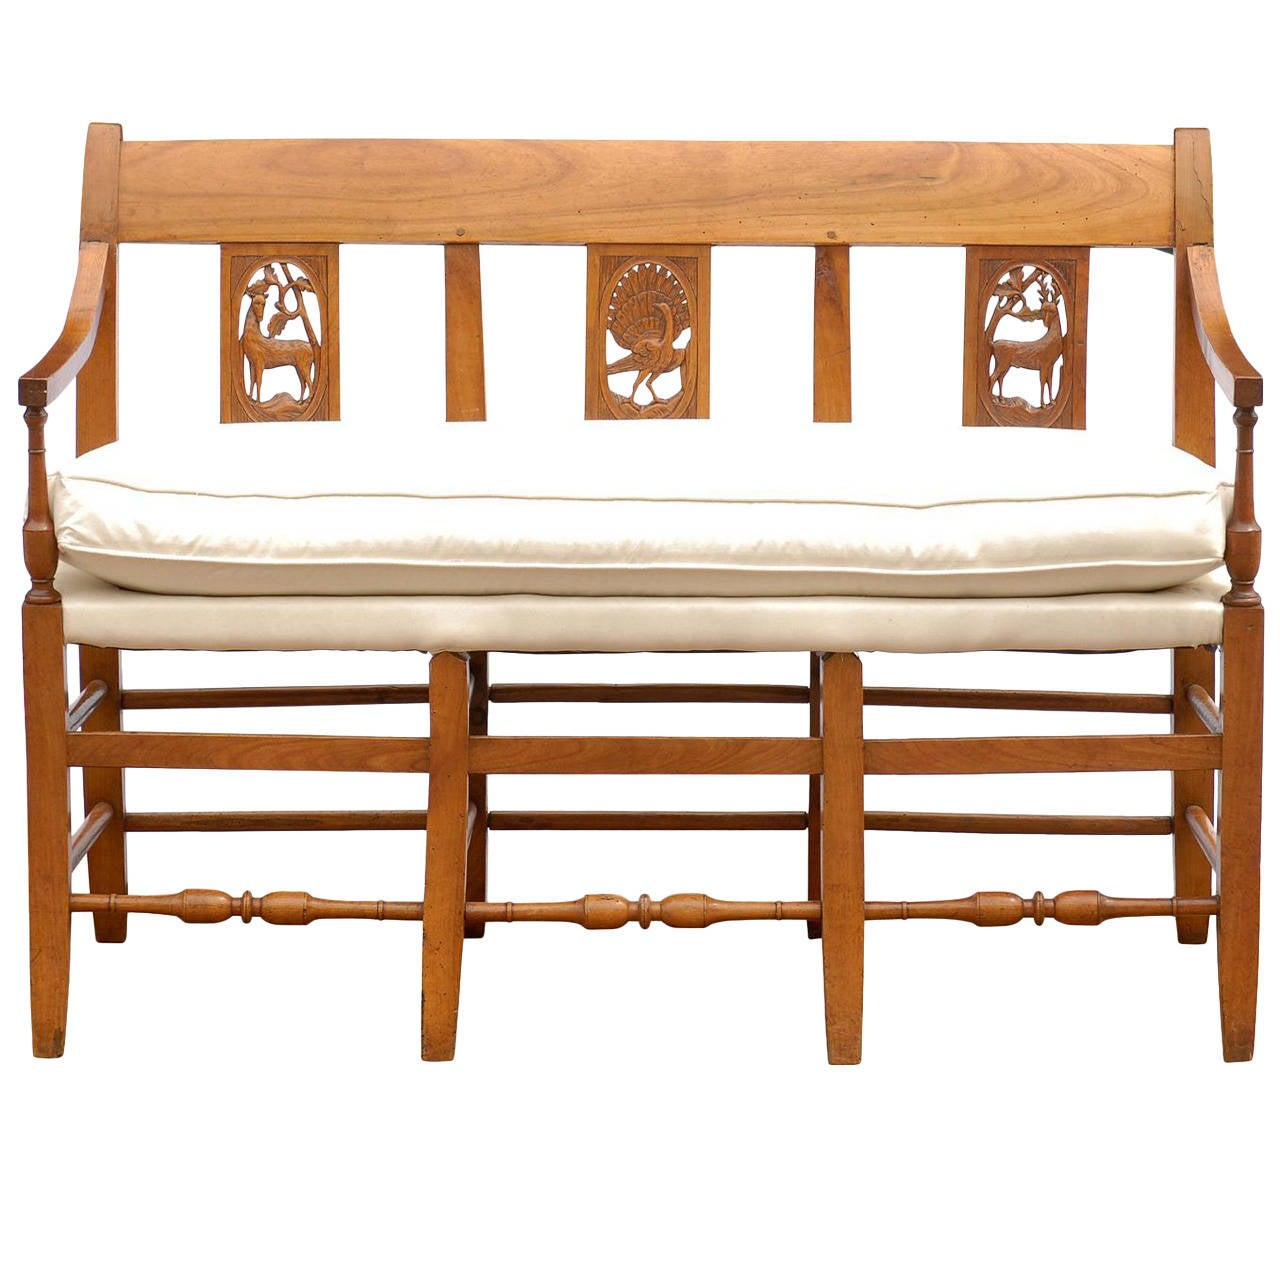 French mid th century wooden bench with carved back and